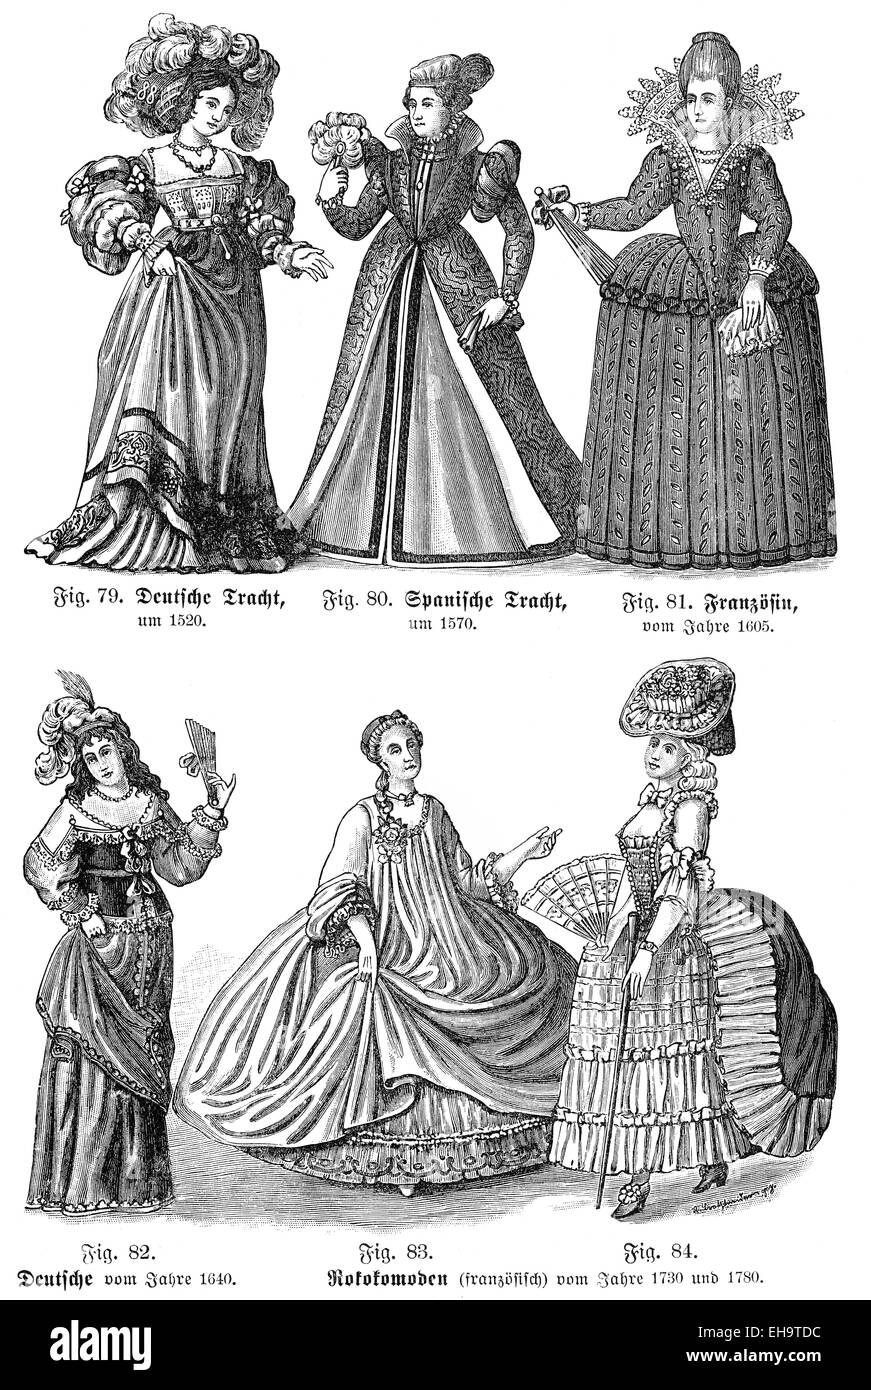 Women's fashion from the 16th to the 18th century, Europe, - Stock Image